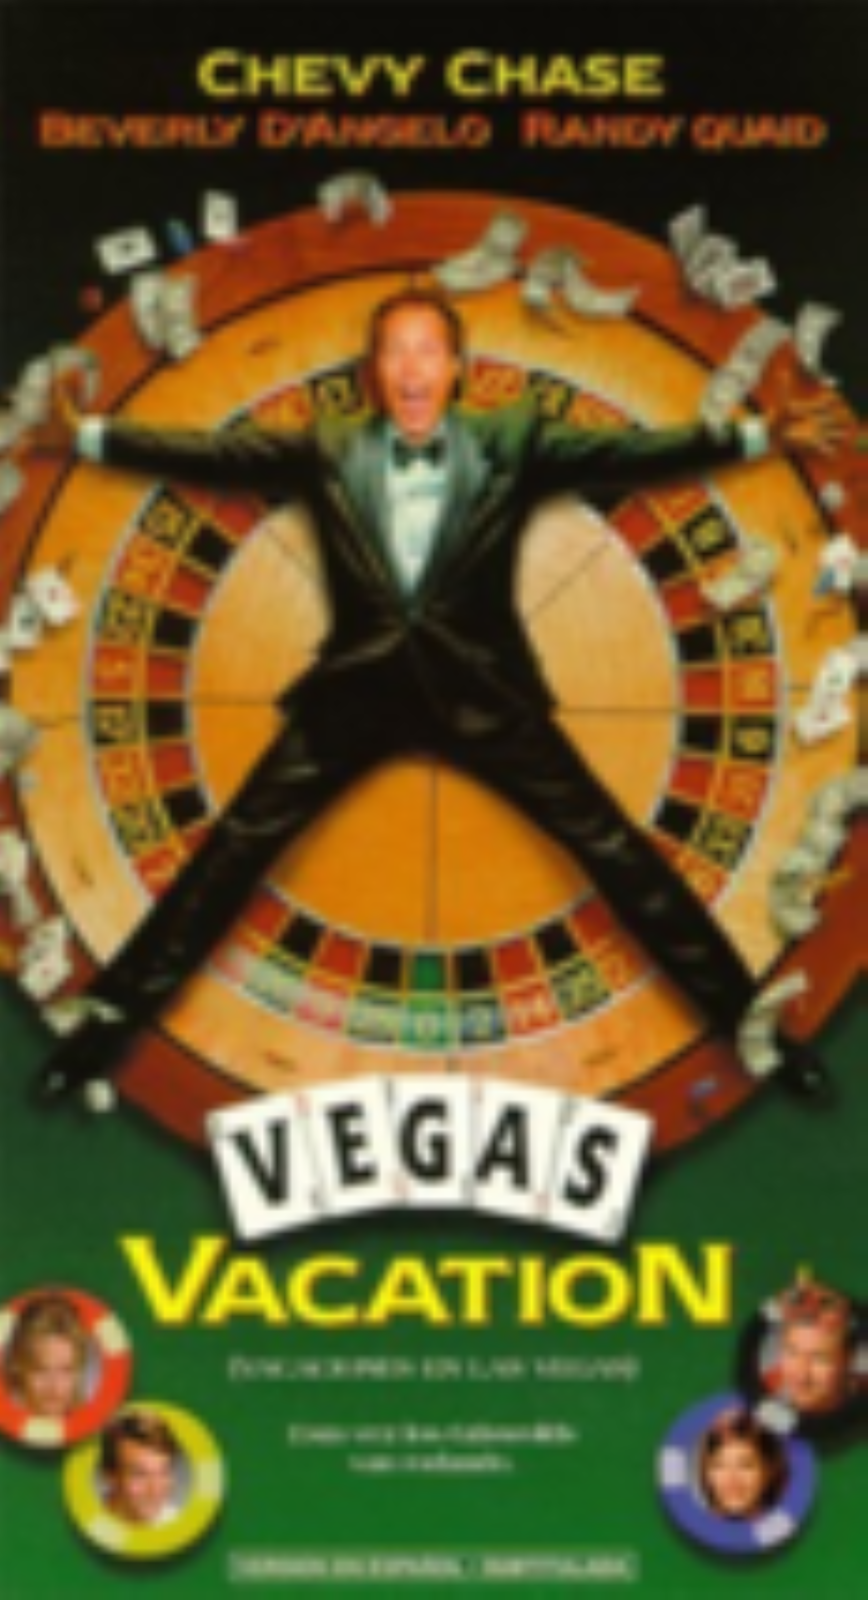 Vegas Vacation Vhs